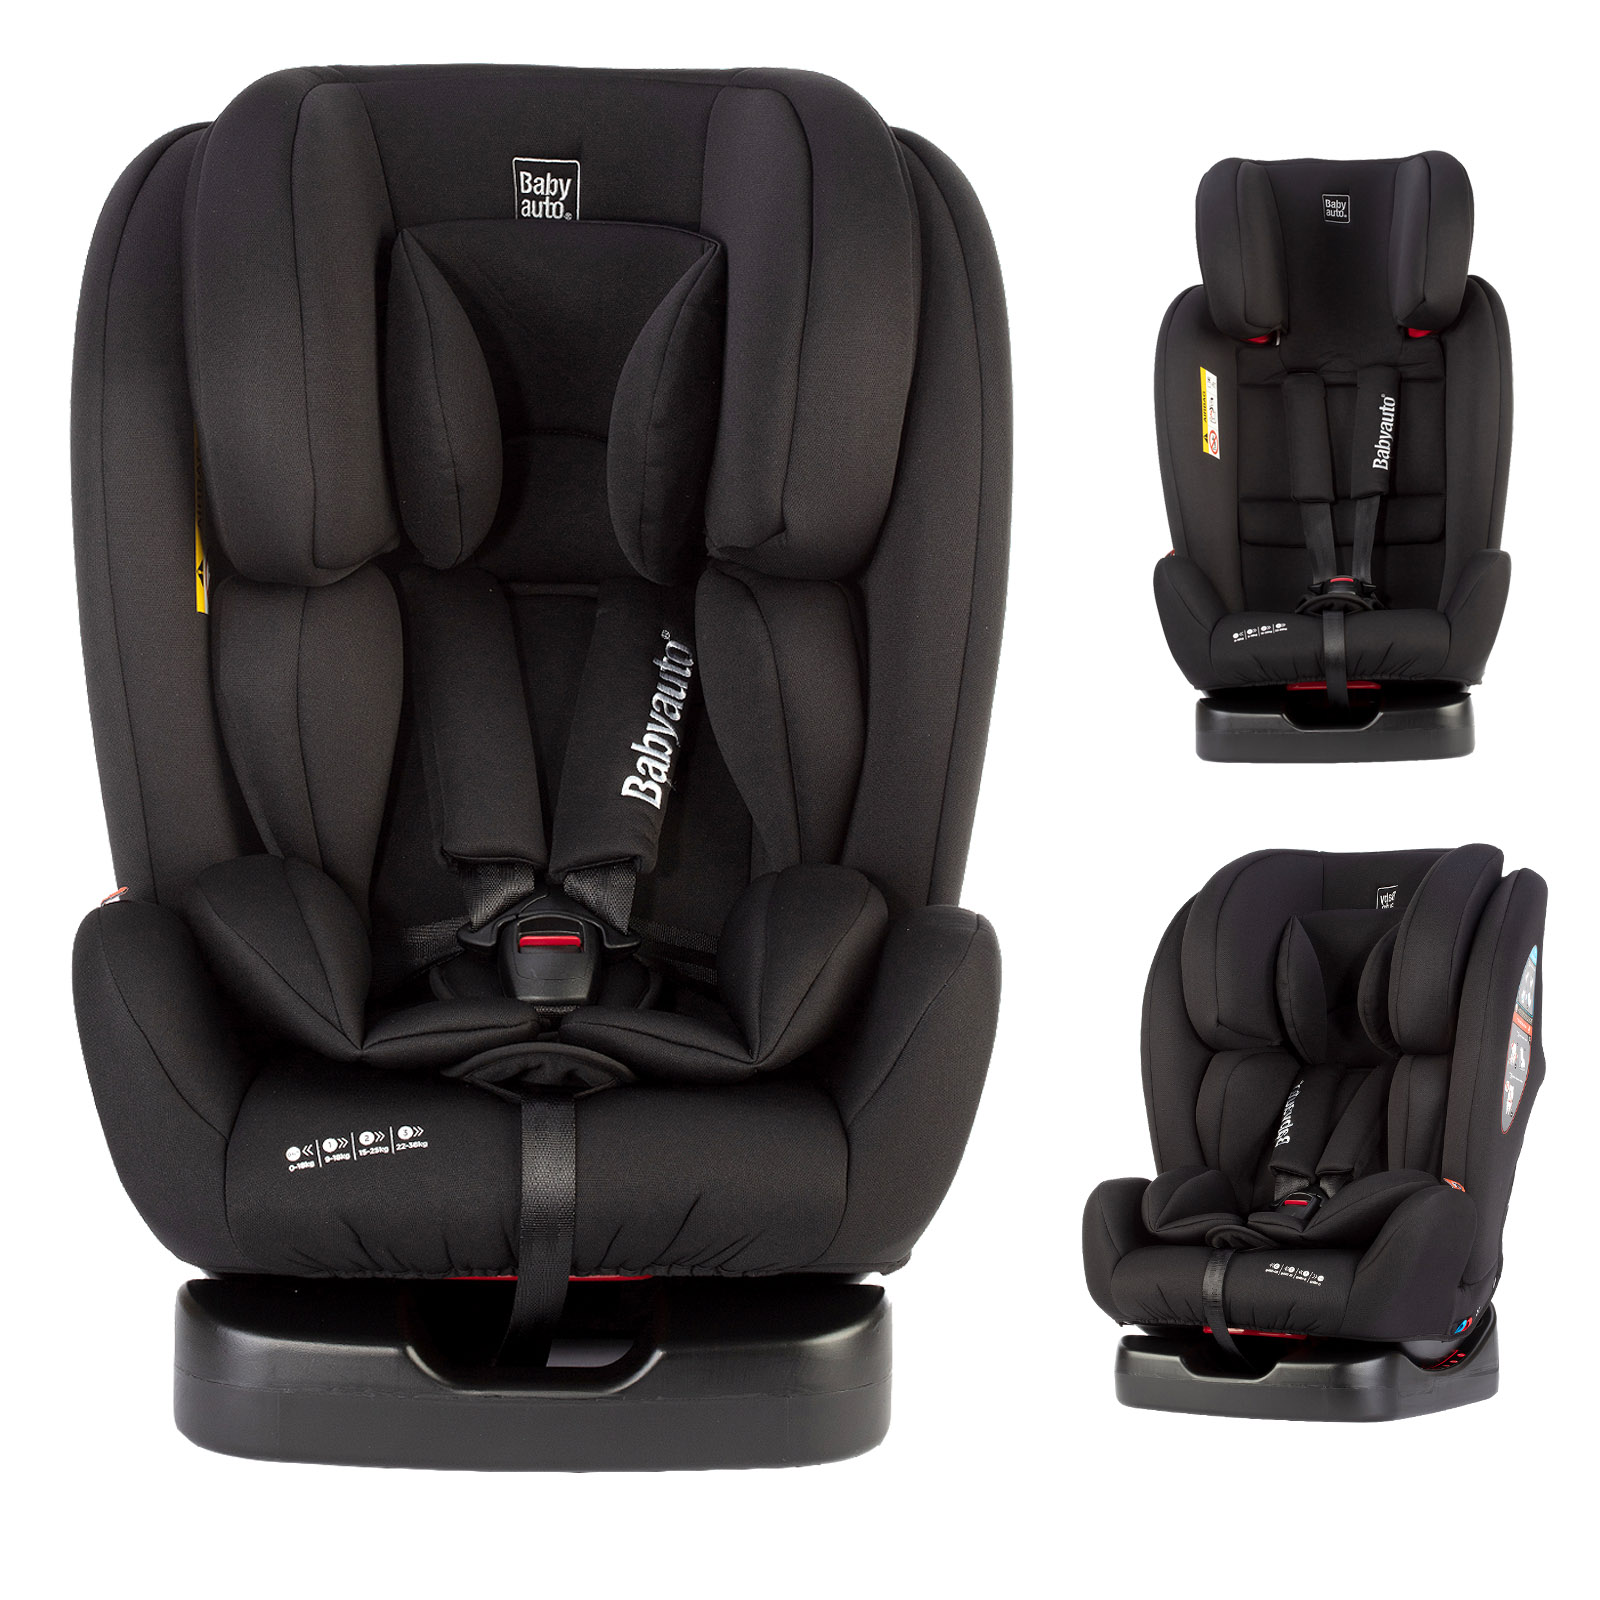 Babyauto Dupla Every Stage Beltfit Group 0+1/2/3 Car Seat - Black